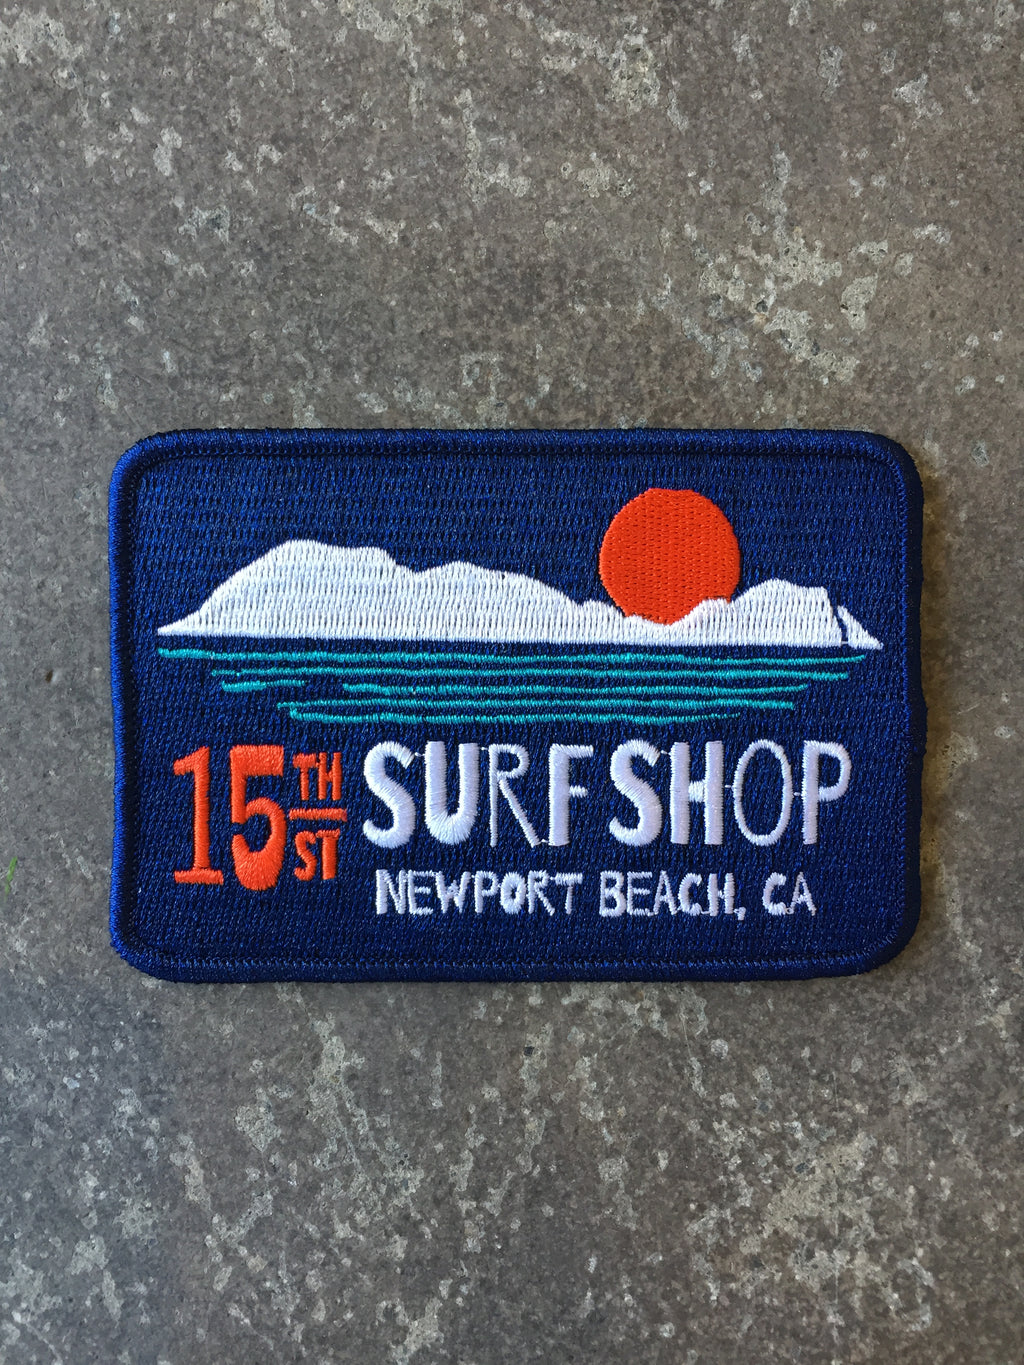 15th St Surf Shop Patch